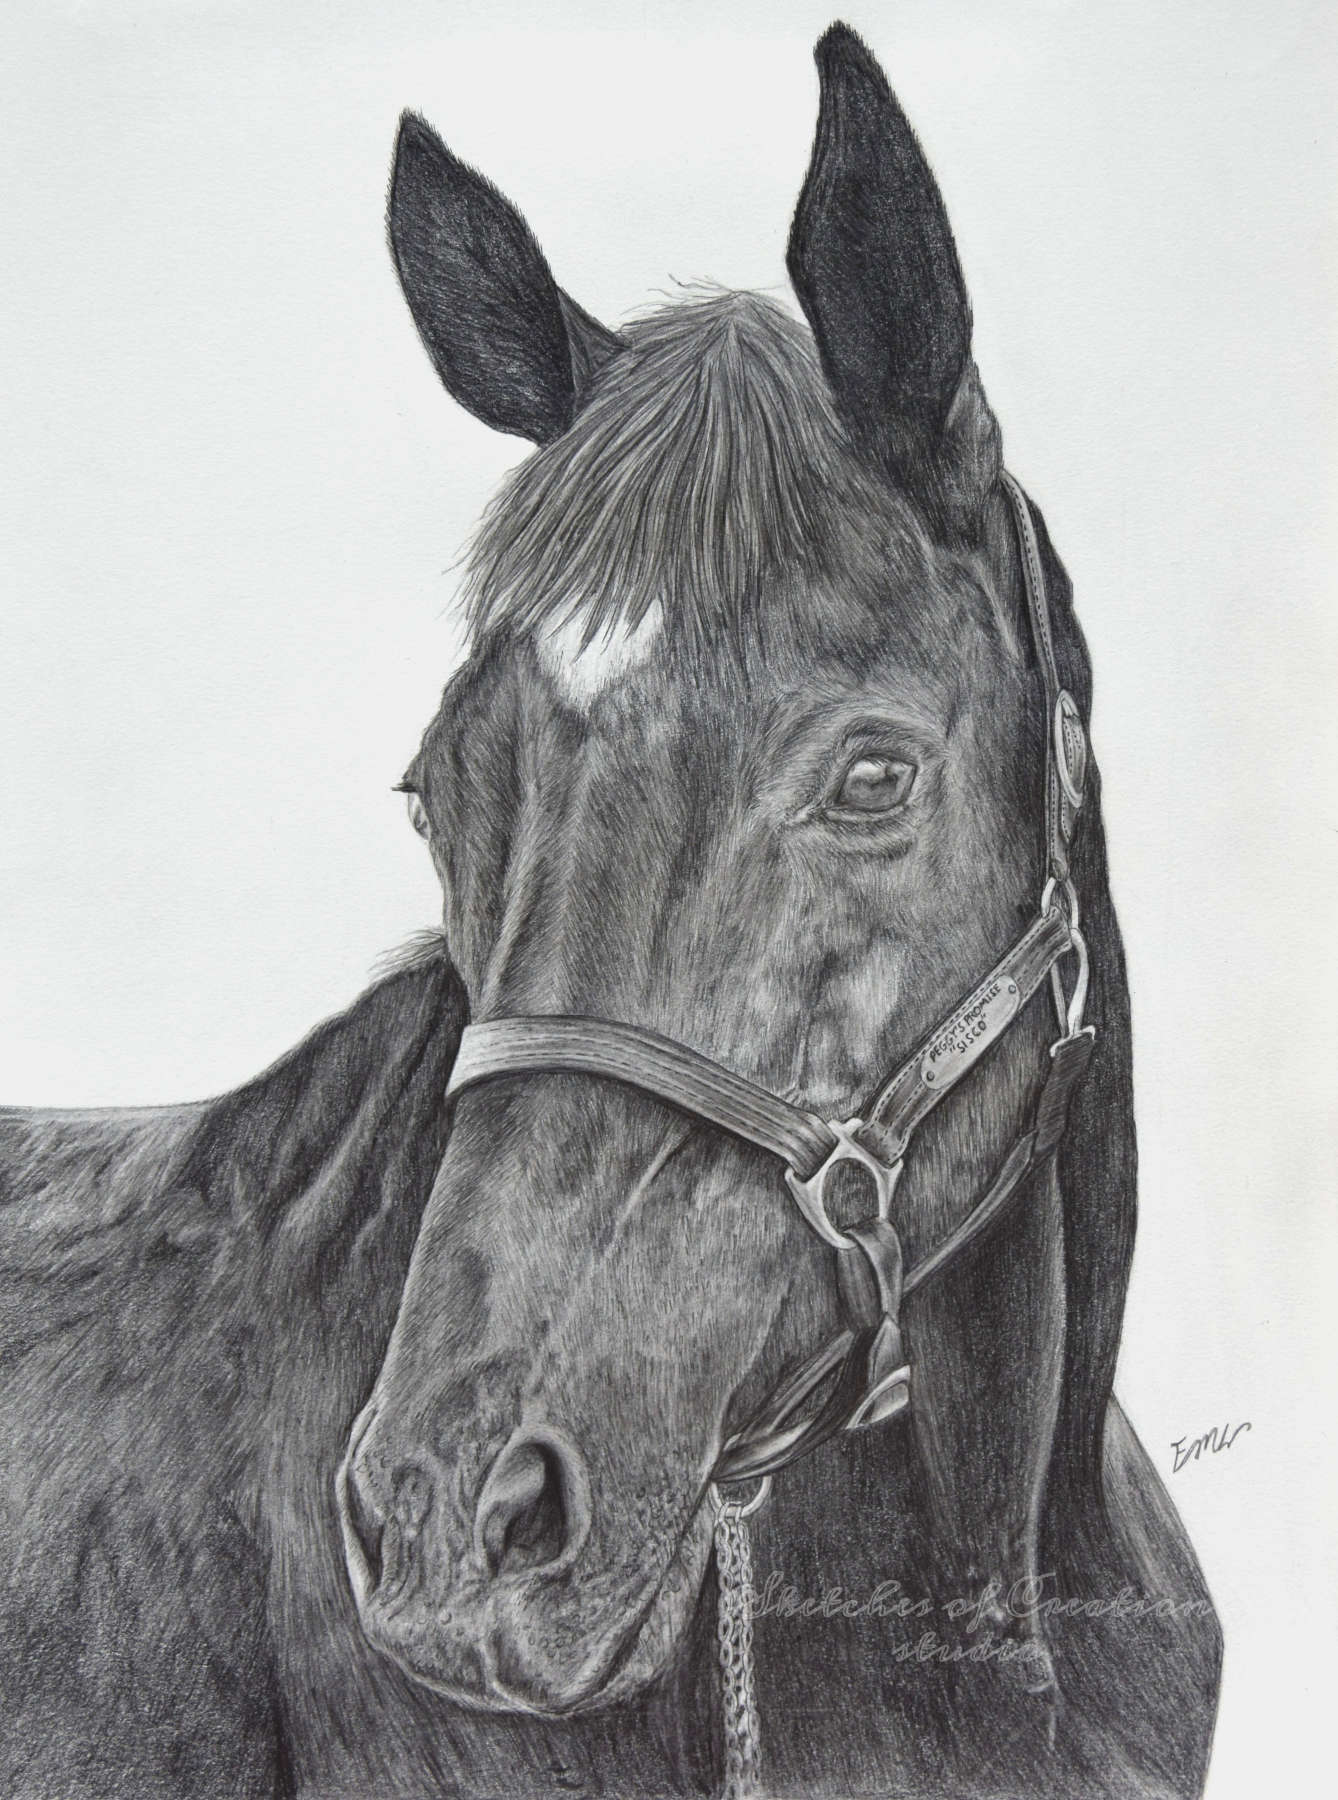 'Sisco' a drawing of a horse. 9x12 inches. Completed September 2018